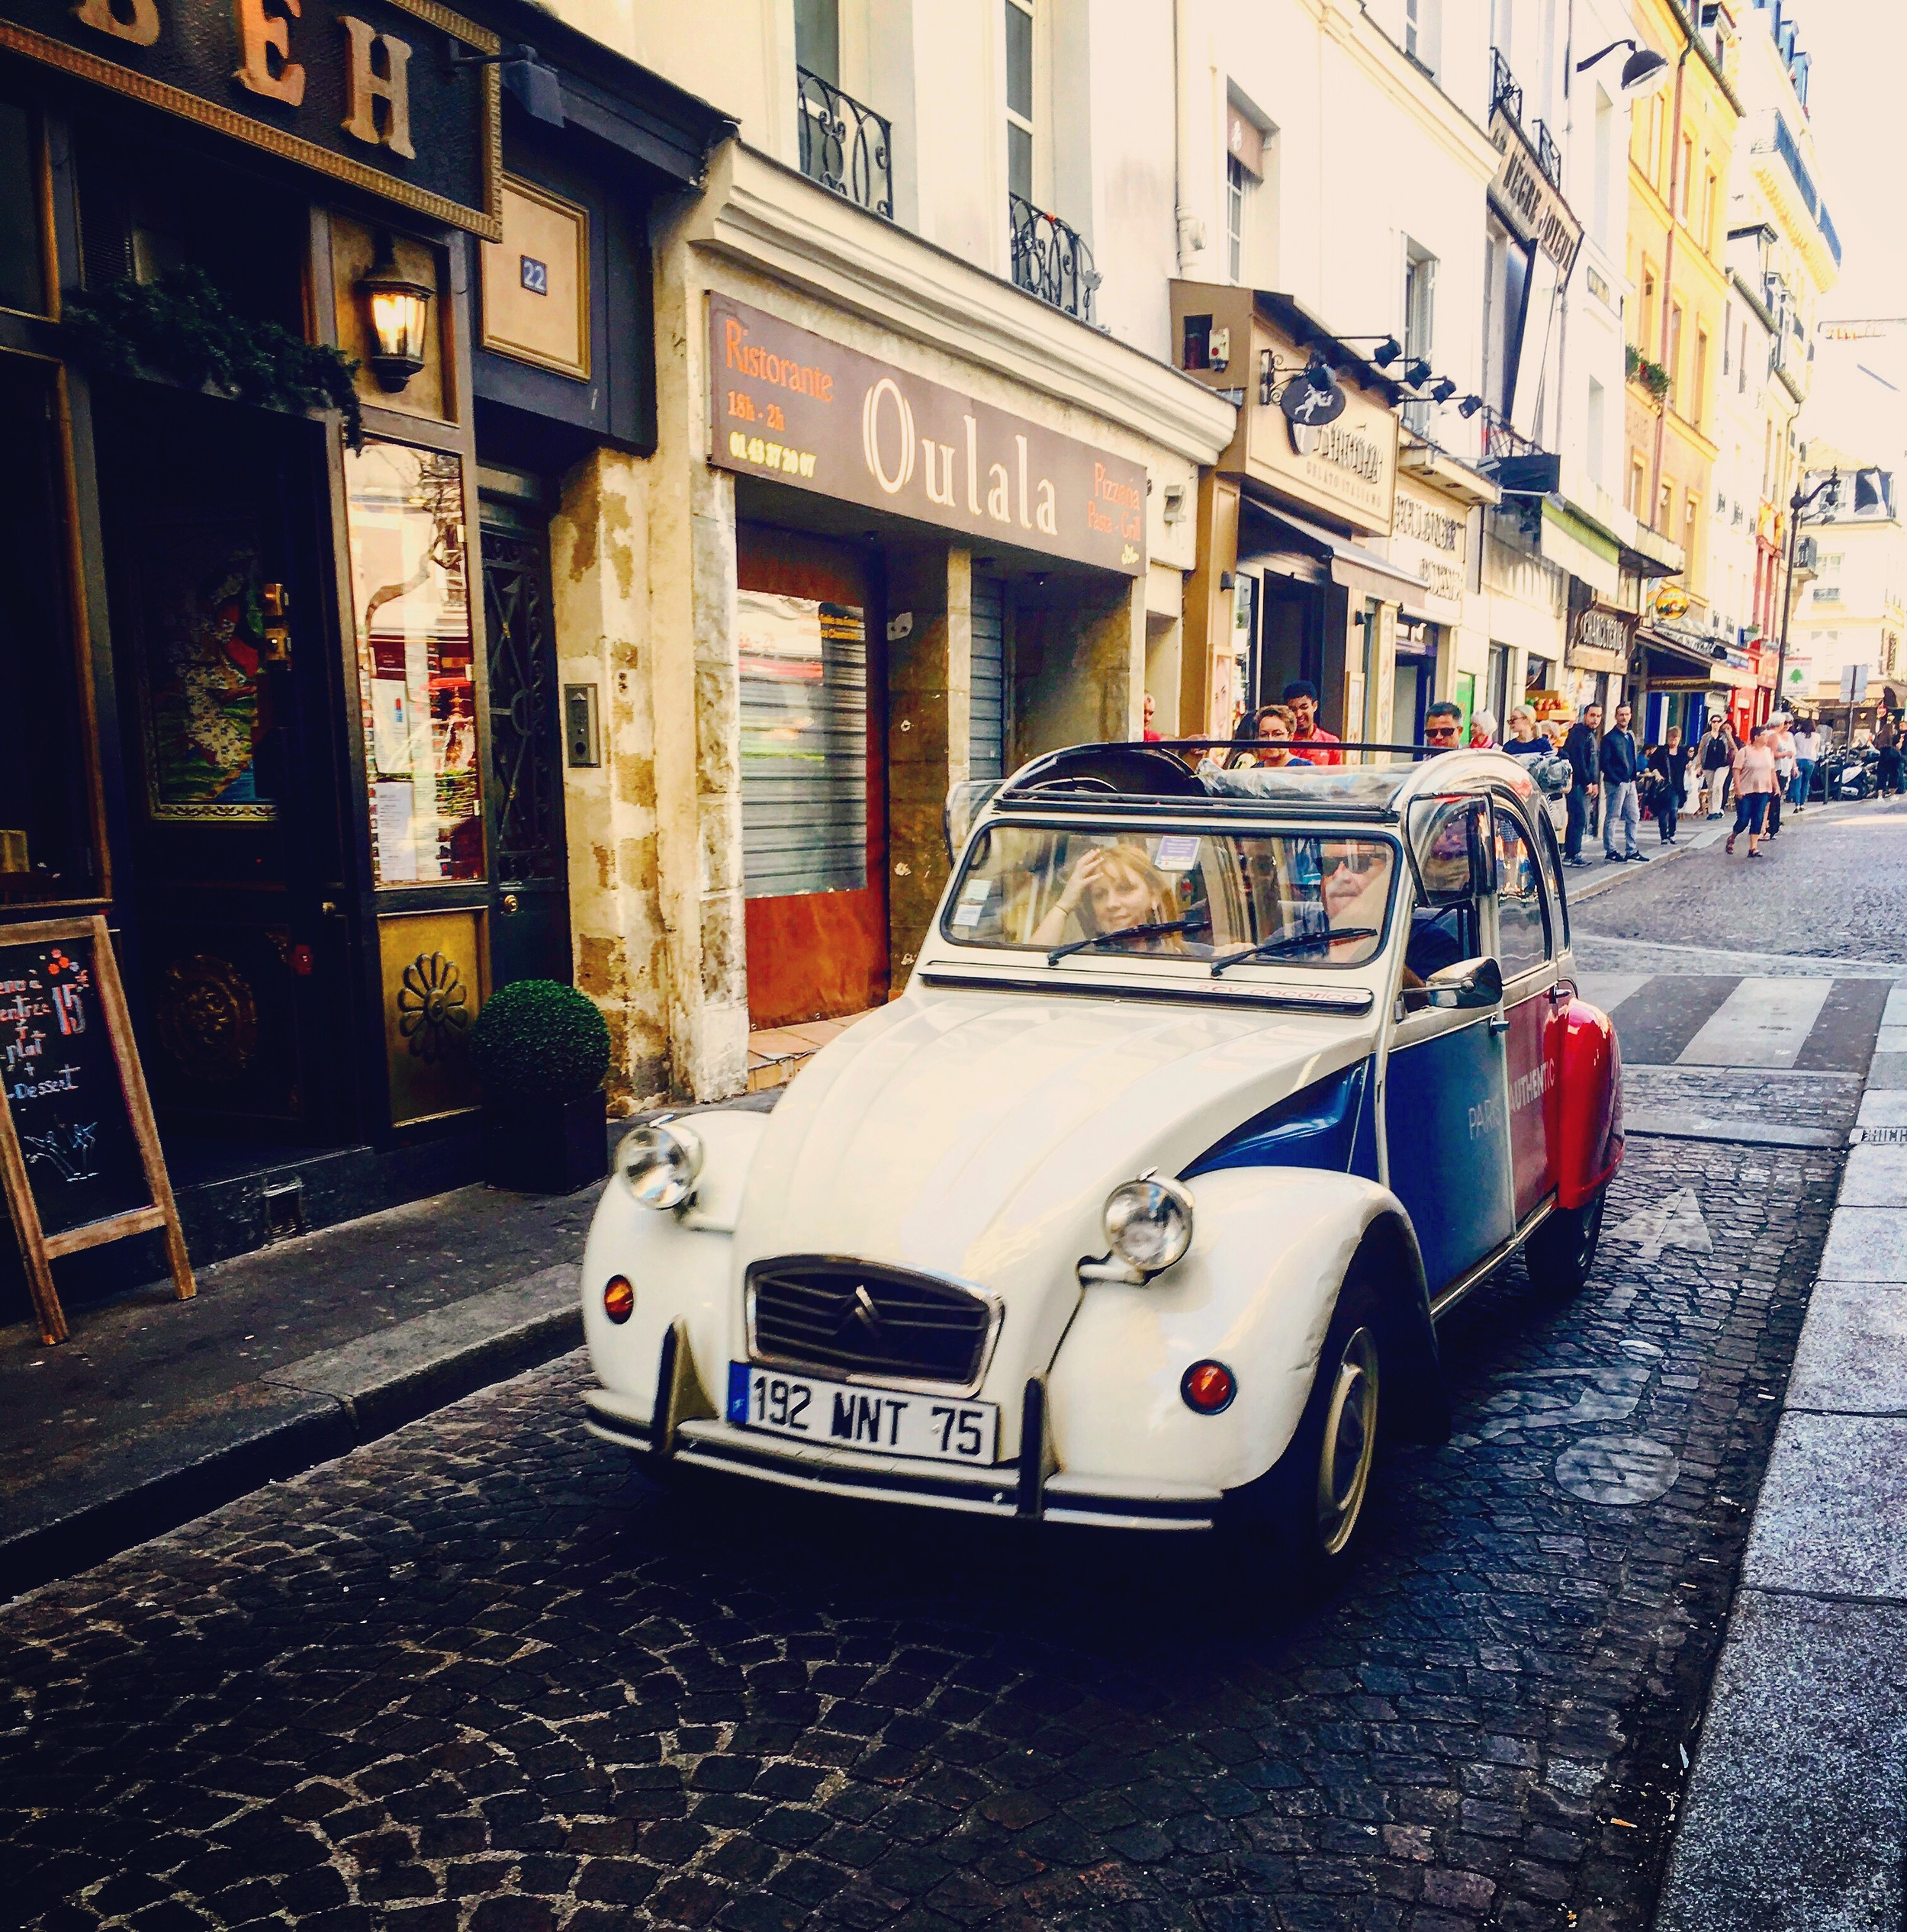 Sites to see like getting your Paris in this vintage bug. Rentable ~ yes